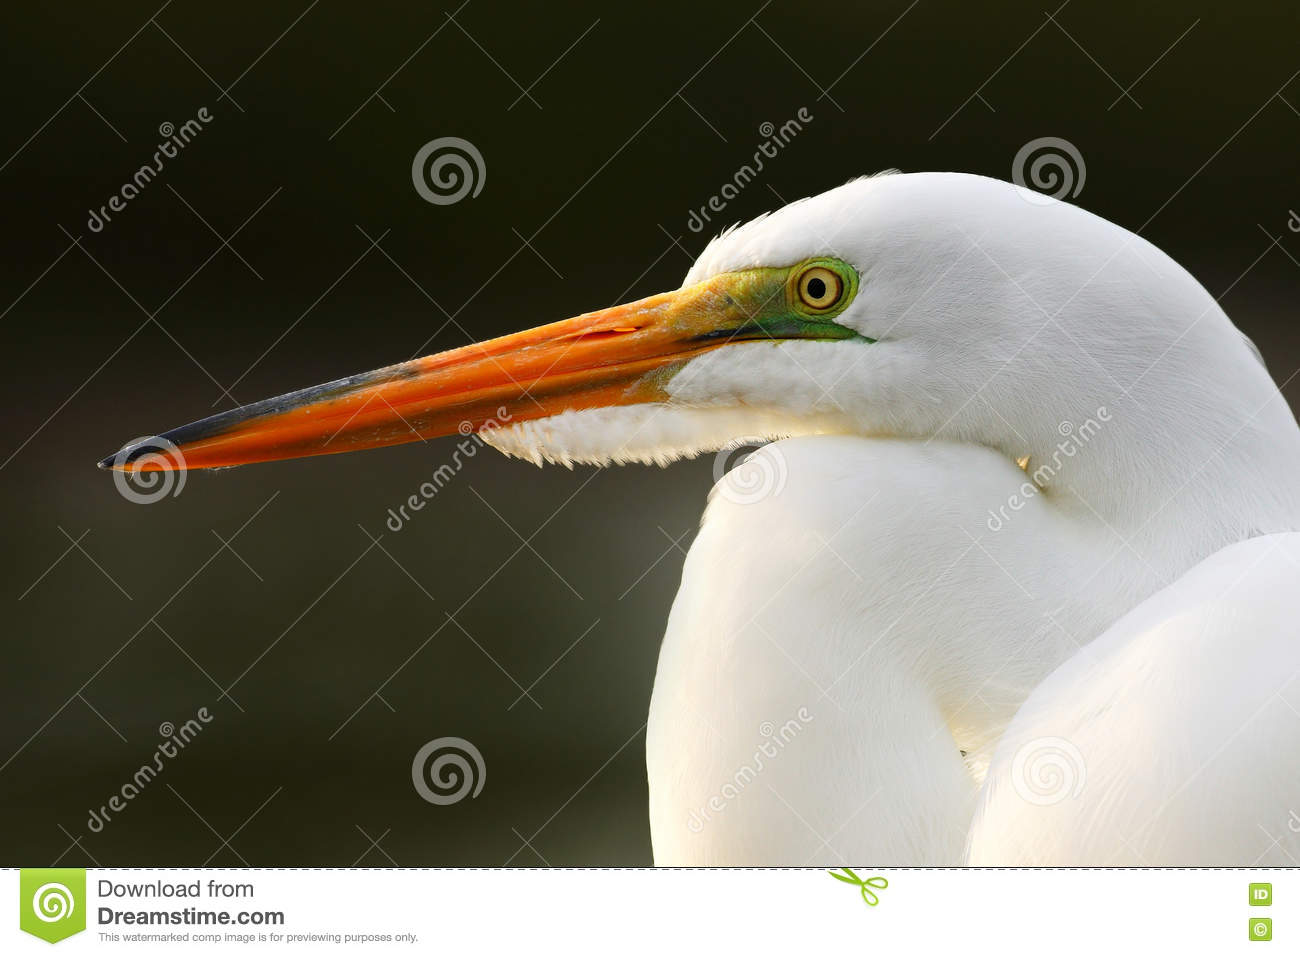 Download Detail Portrait Of Water Bird. White Heron, Great Egret, Egretta Alba, Standing In The Water In The March. Beach In Florida, USA. Stock Photo - Image of dominical, ornithology: 75949918